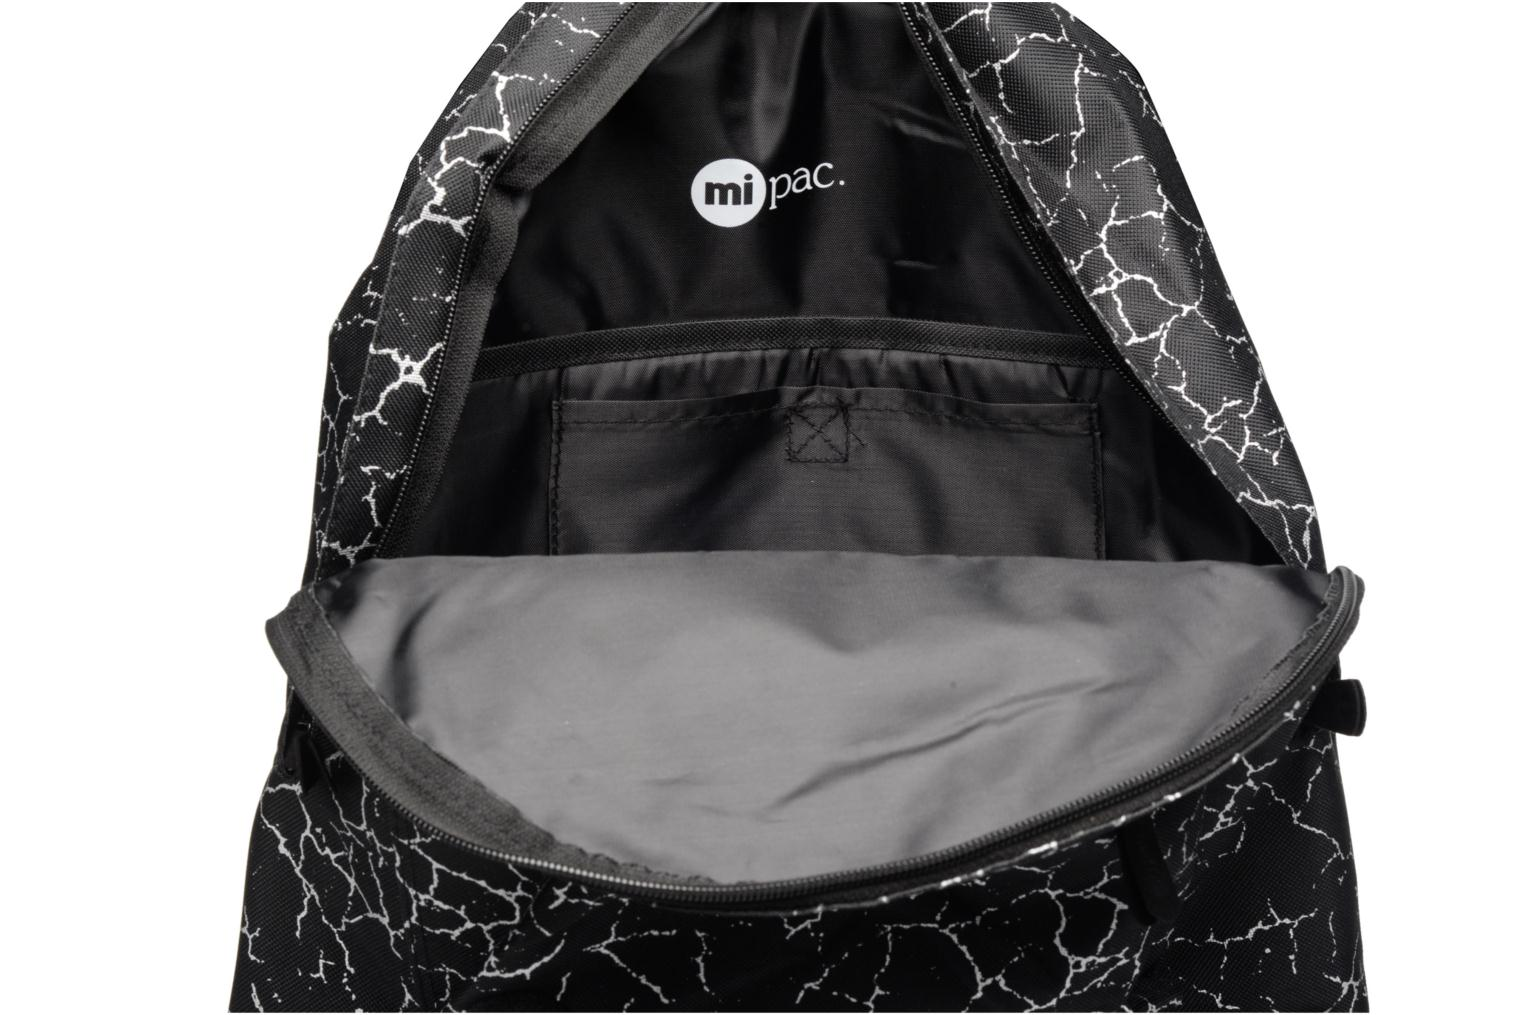 Custom Pac Black Backpack Mi silver Cracked Hq67Bwn5